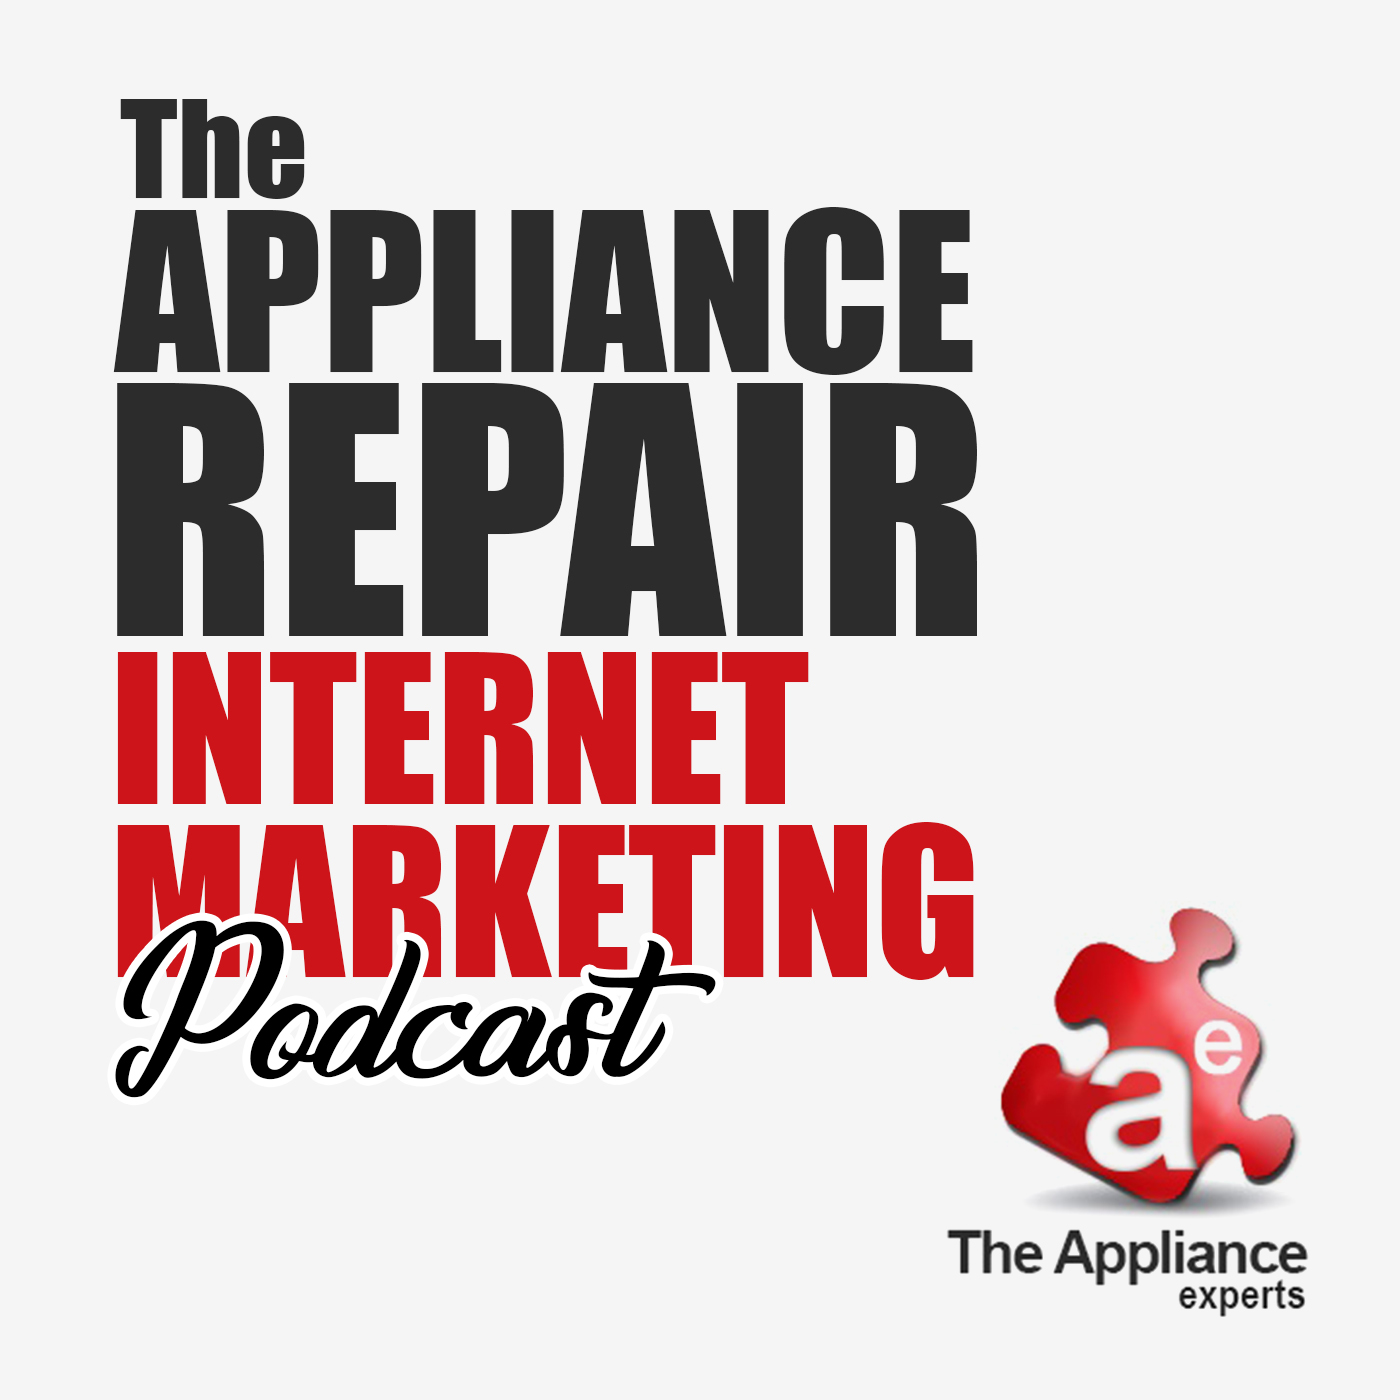 The Appliance Repair Marketing Podcast  - Internet Marketing Tips For Appliance Service Businesses